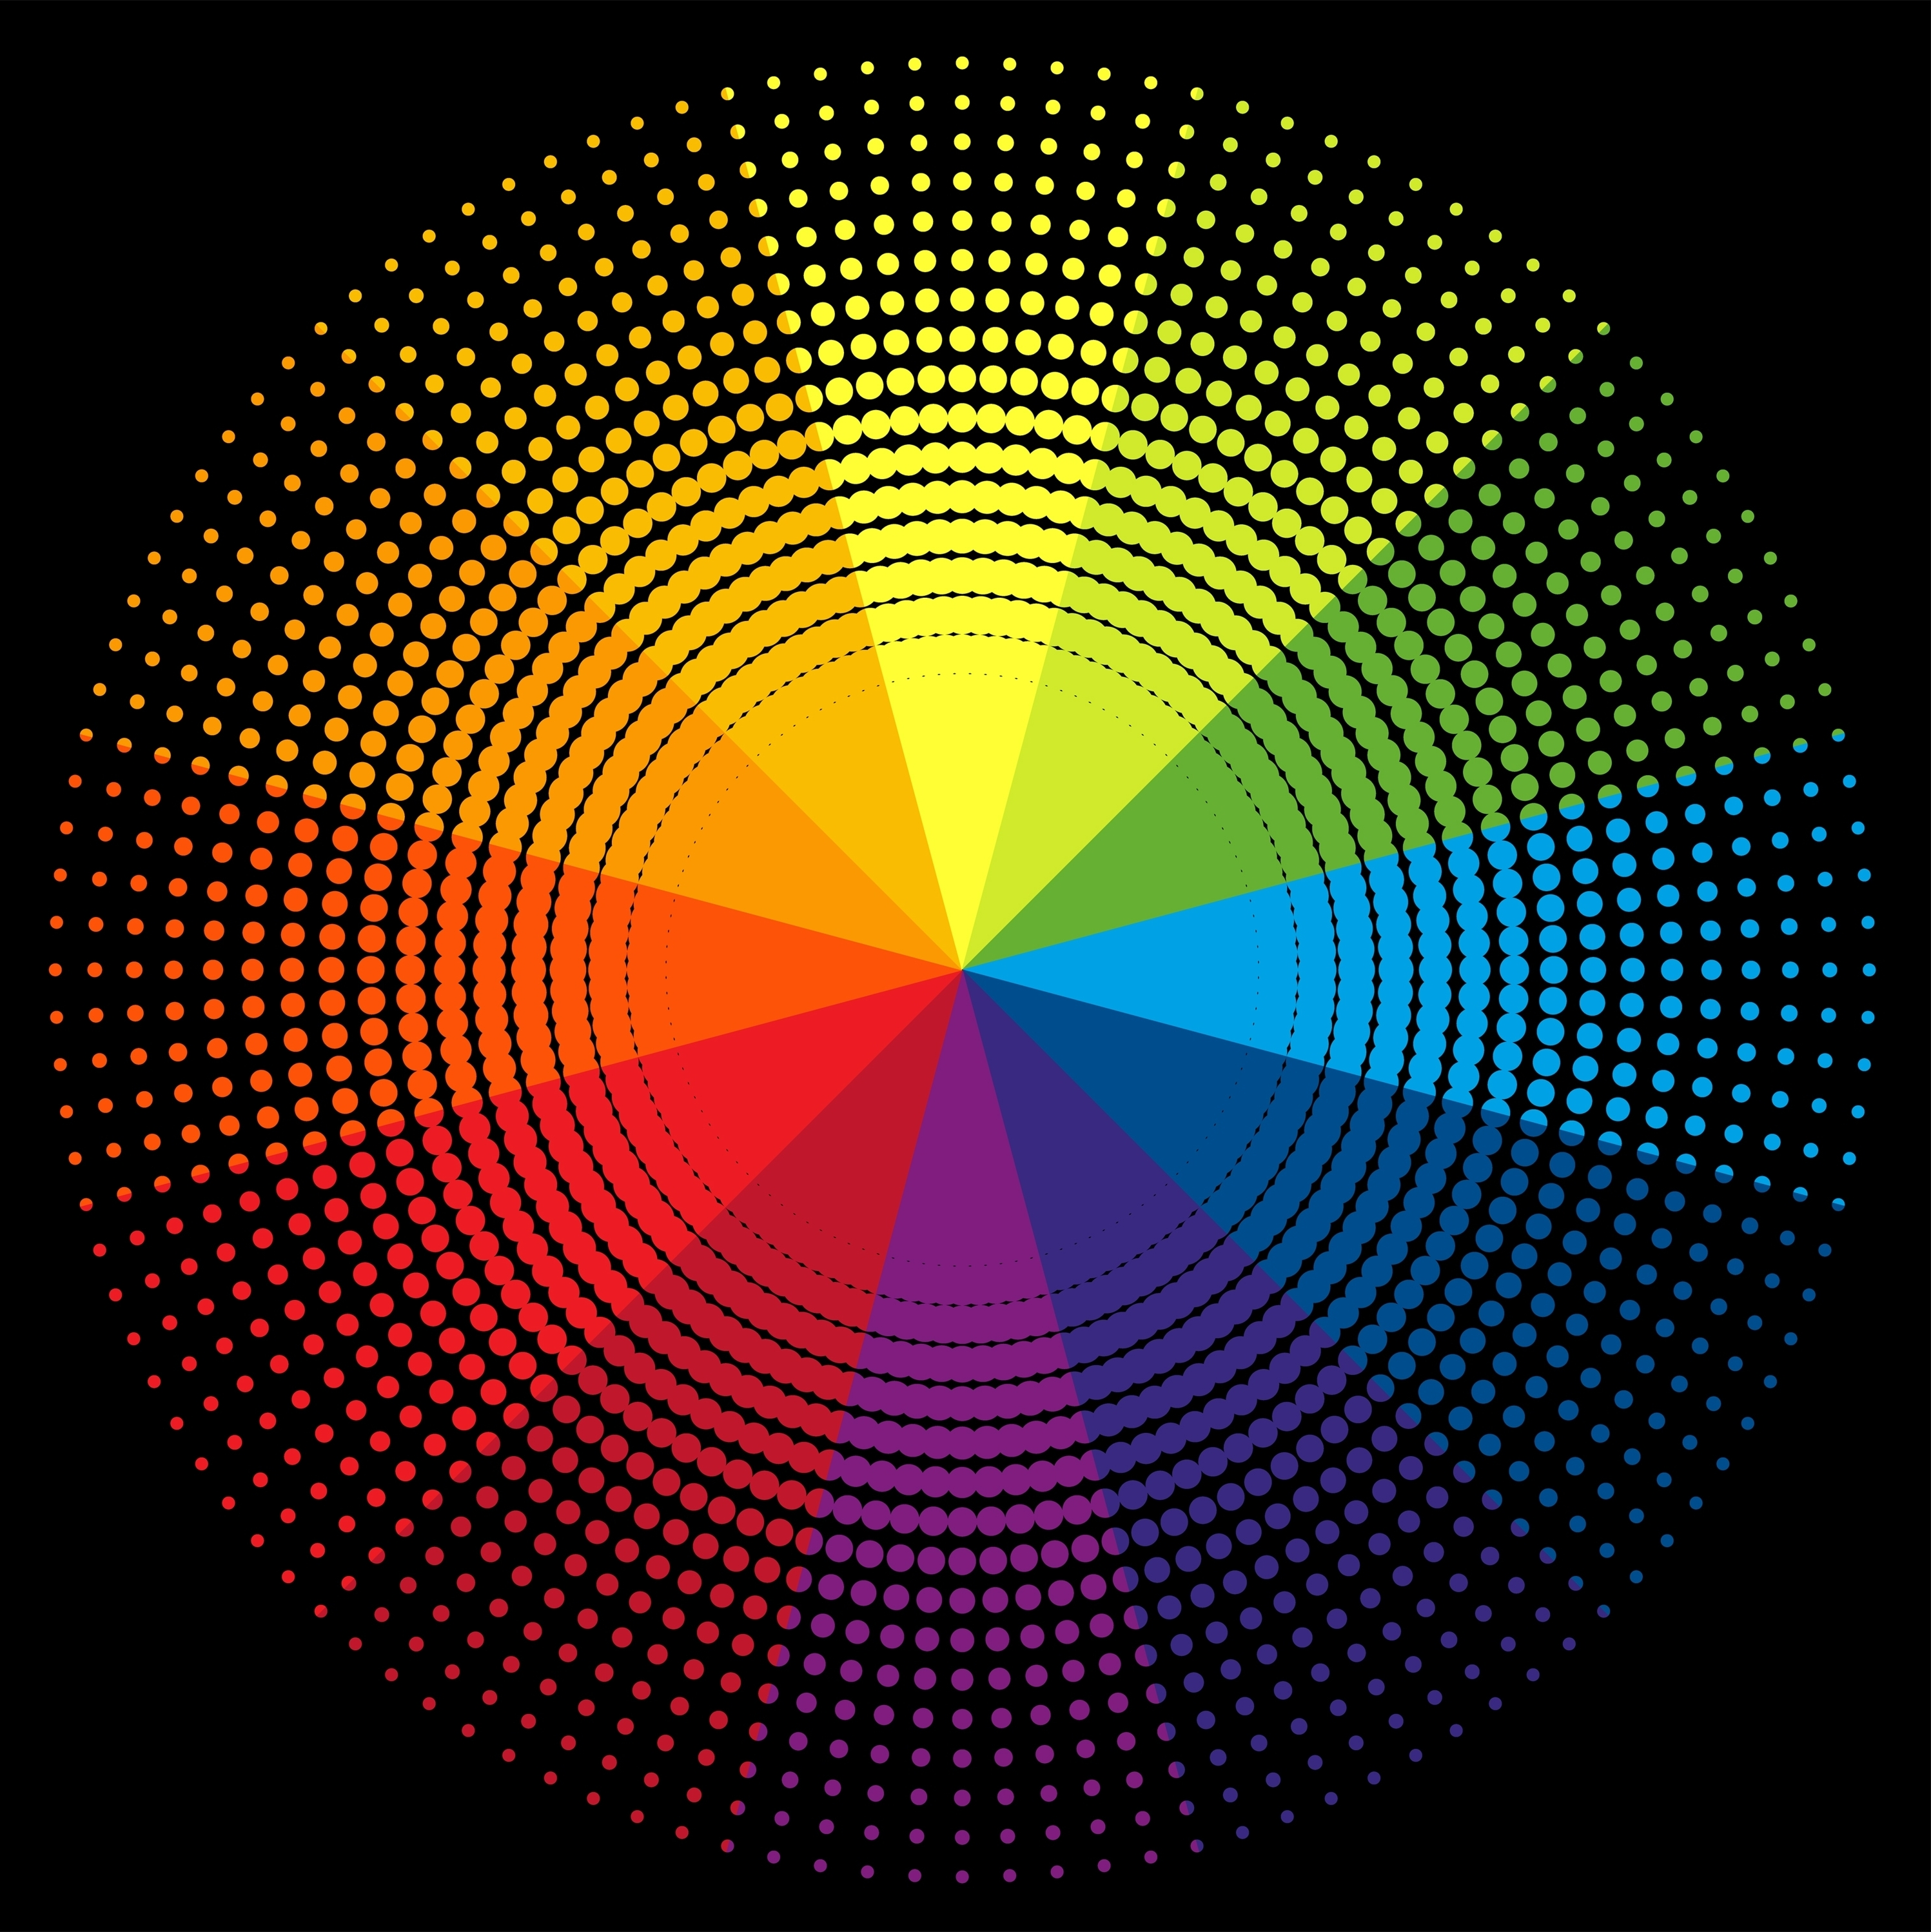 Read The Rainbow Roy G Biv Puts New Spin On Color